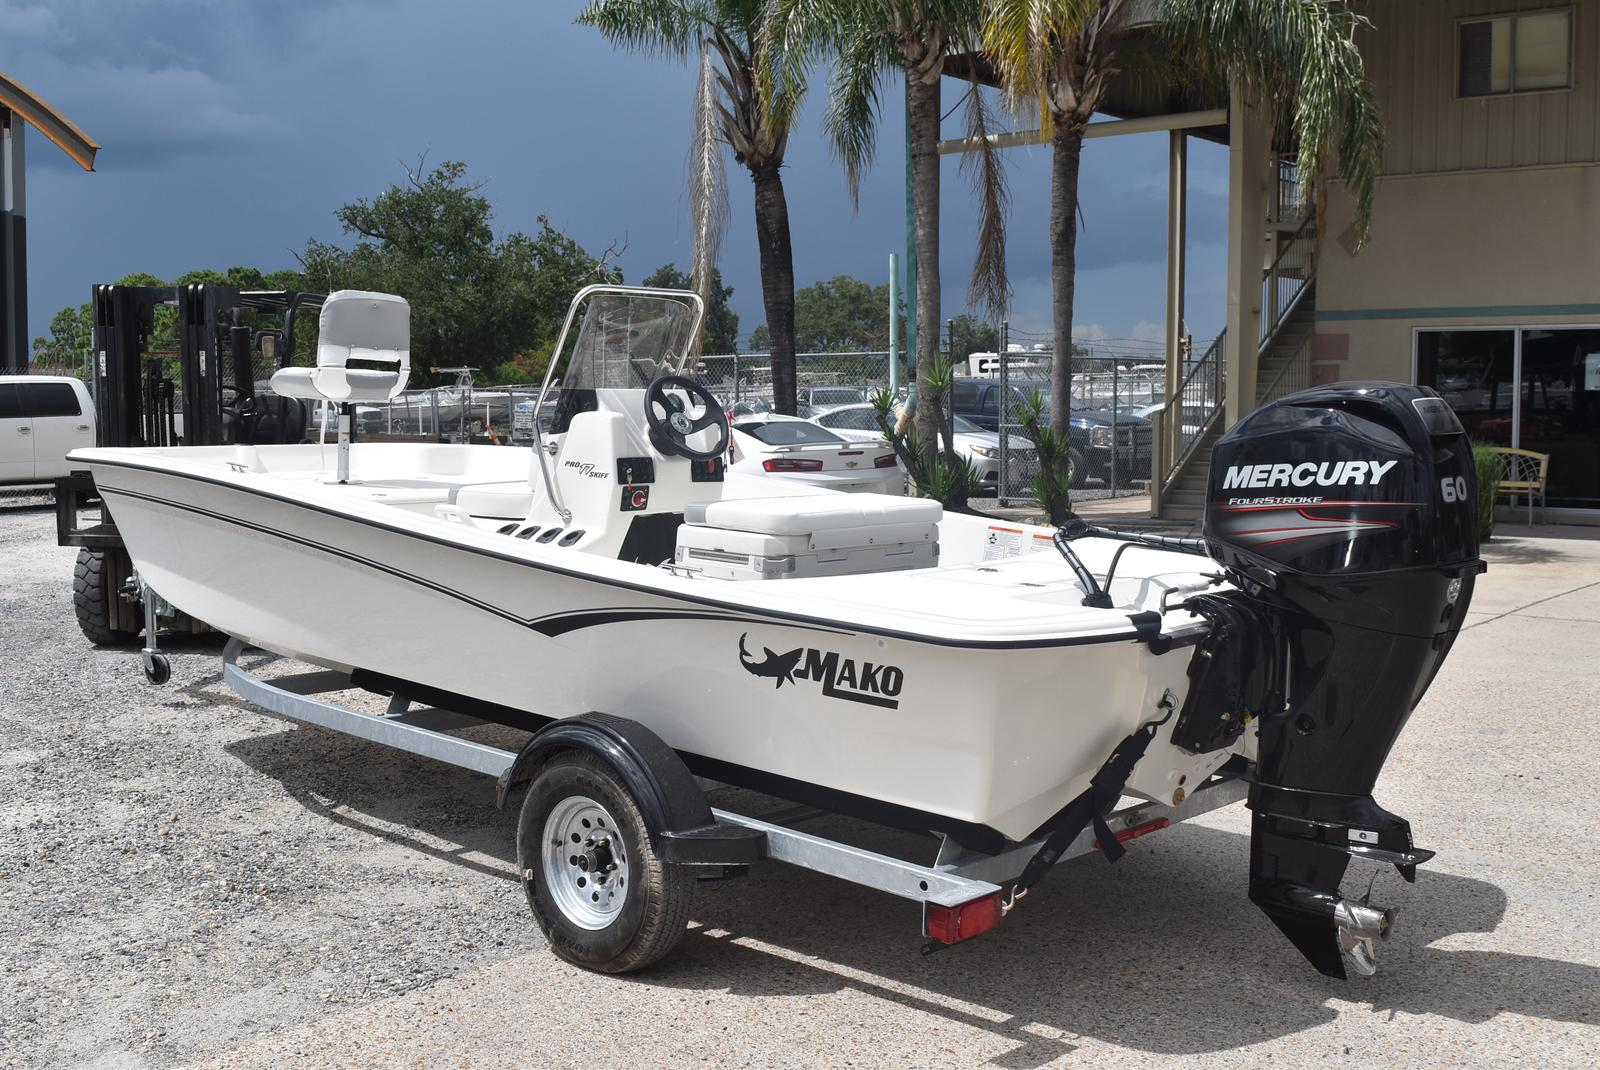 2020 Mako boat for sale, model of the boat is Pro Skiff 17, 75 ELPT & Image # 189 of 702